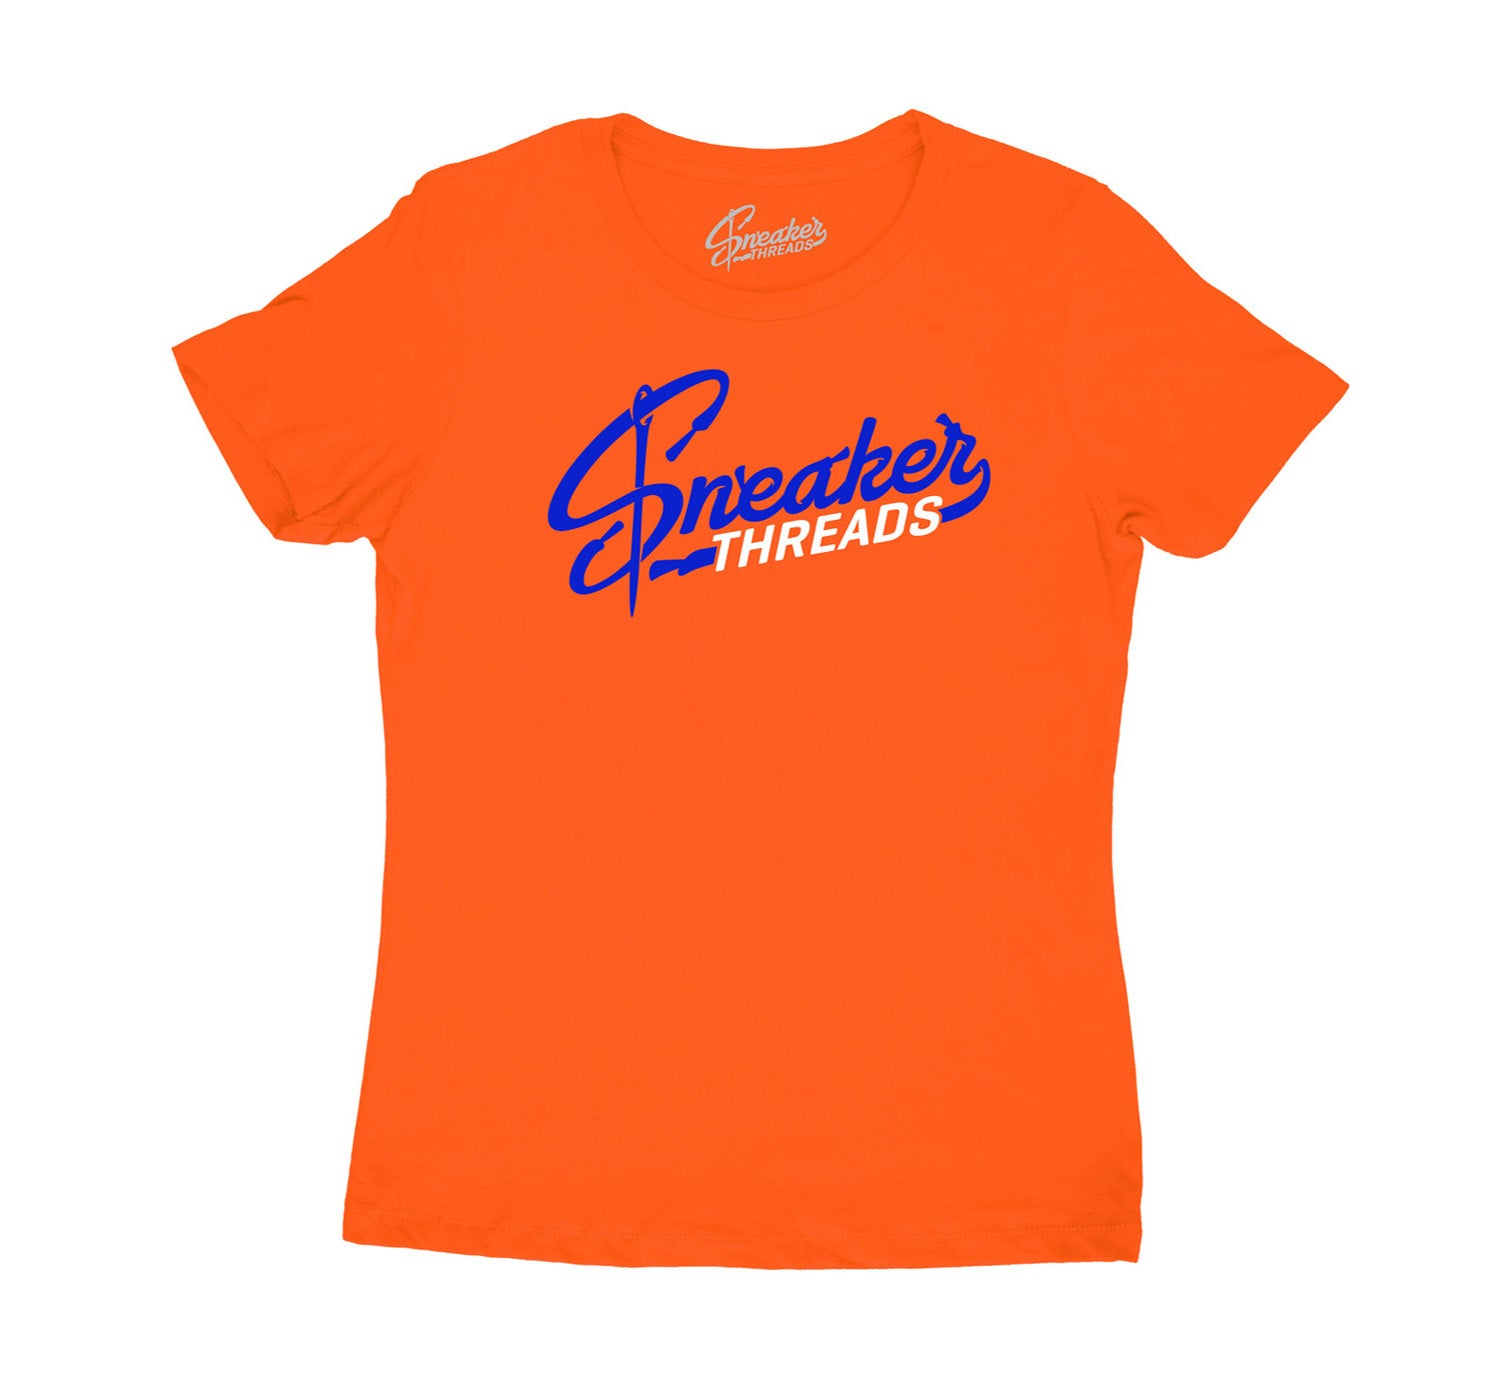 Womens tees designed to match with the Jordan 3 knicks womens sneaker collection